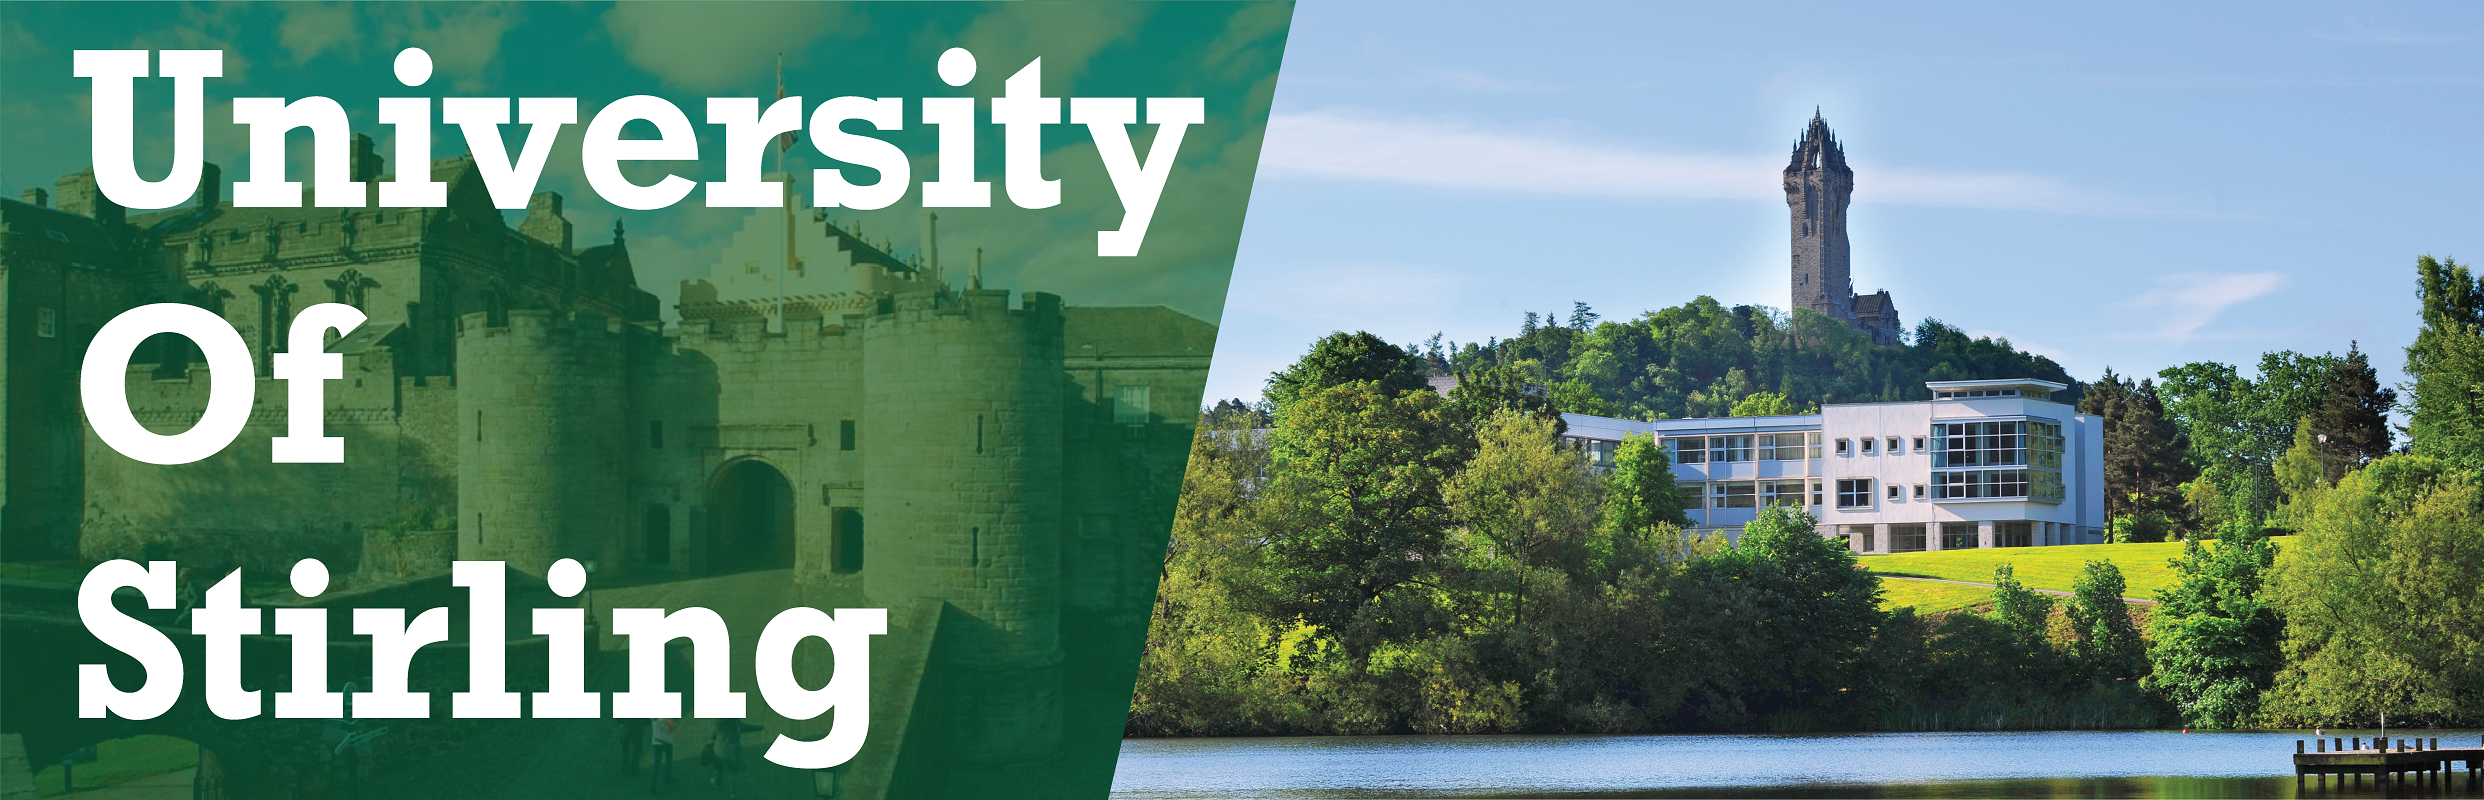 University of Stirling - Banner